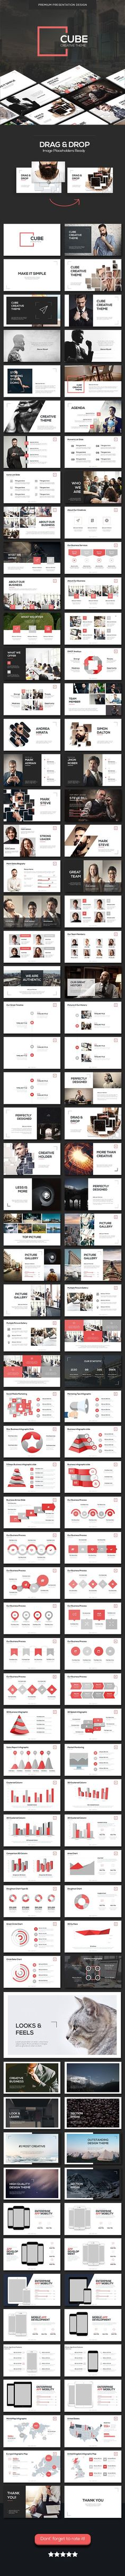 CUBE - Creative Theme (PowerPoint Templates)